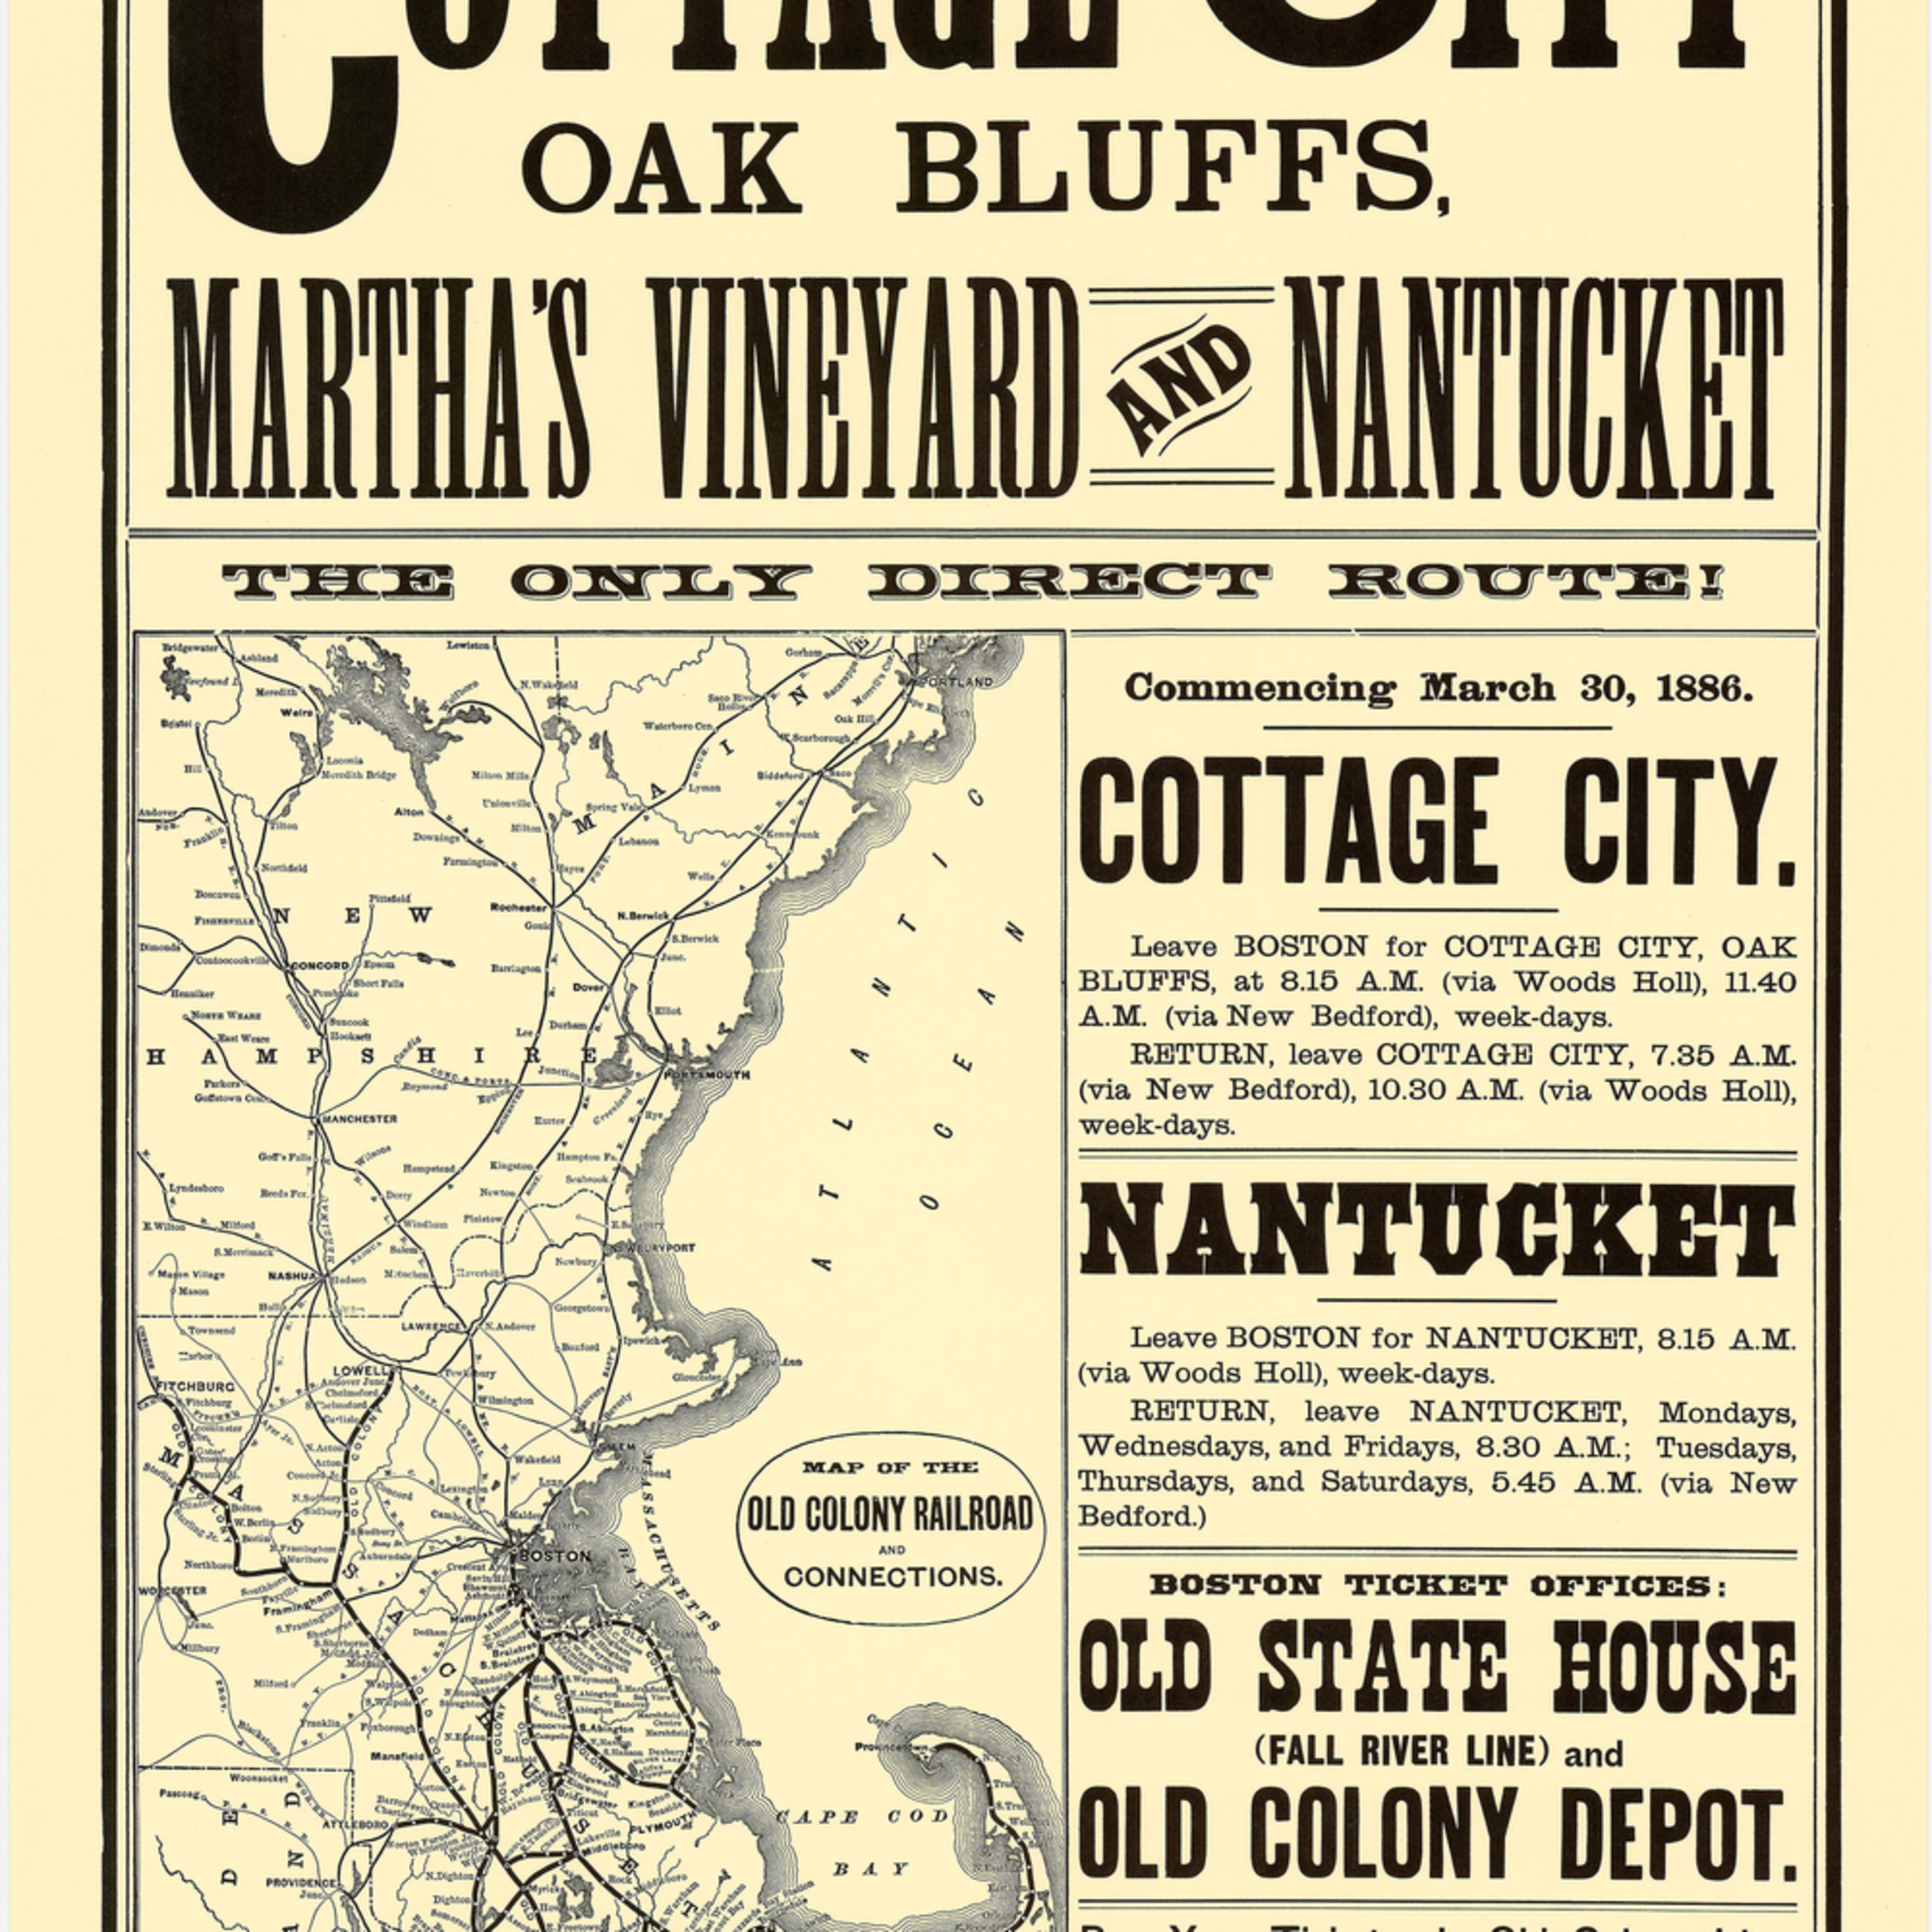 002 p cottage city poster1886 18x28 32 tr1gbf